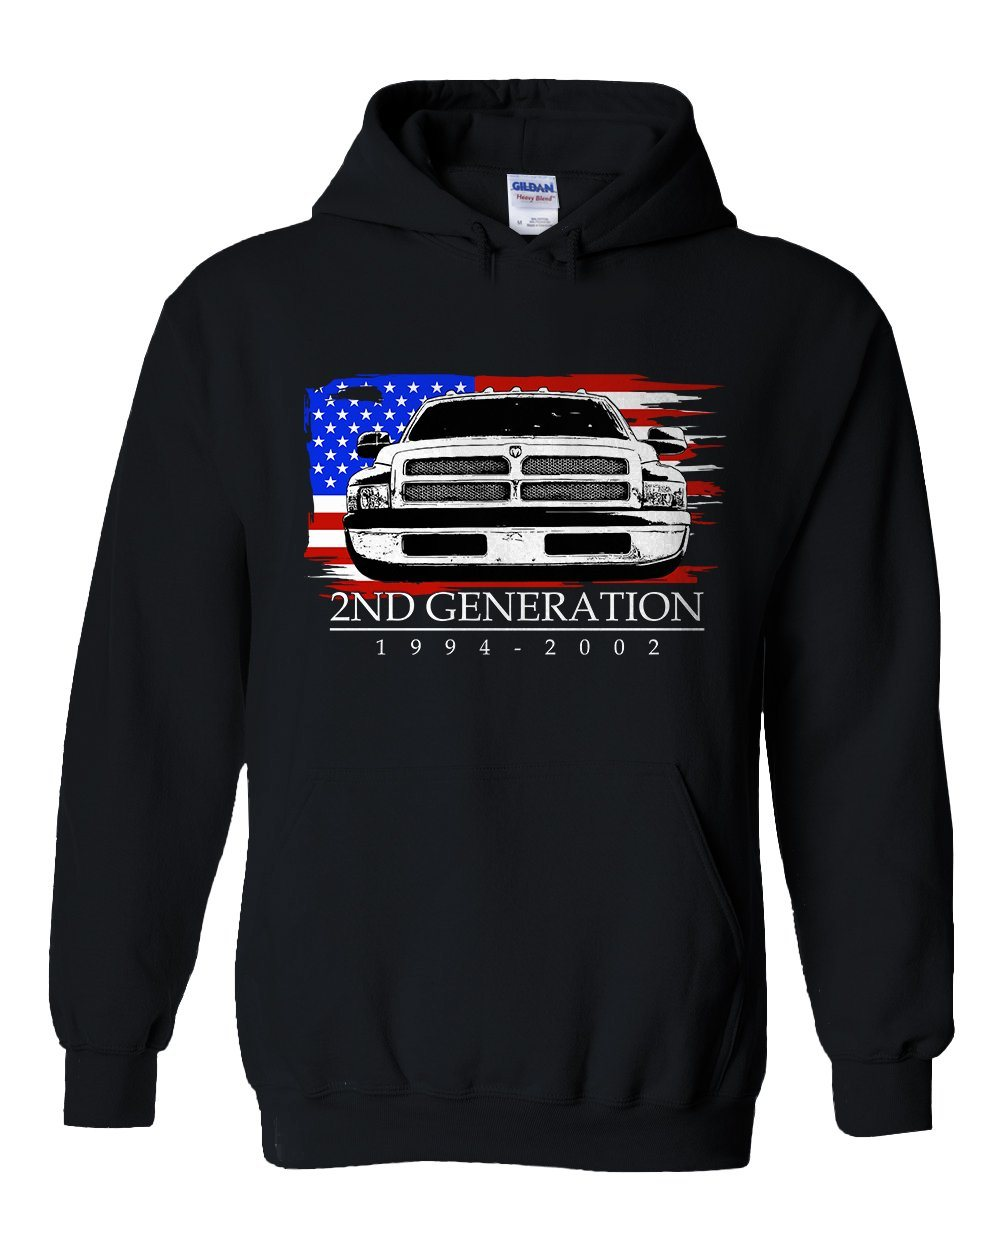 2nd Generation Dodge Ram | 1994-2002 Dodge Ram | second Gen Dodge Ram | Aggressive Thread Truck Apparel | Hoodie Sweatshirt